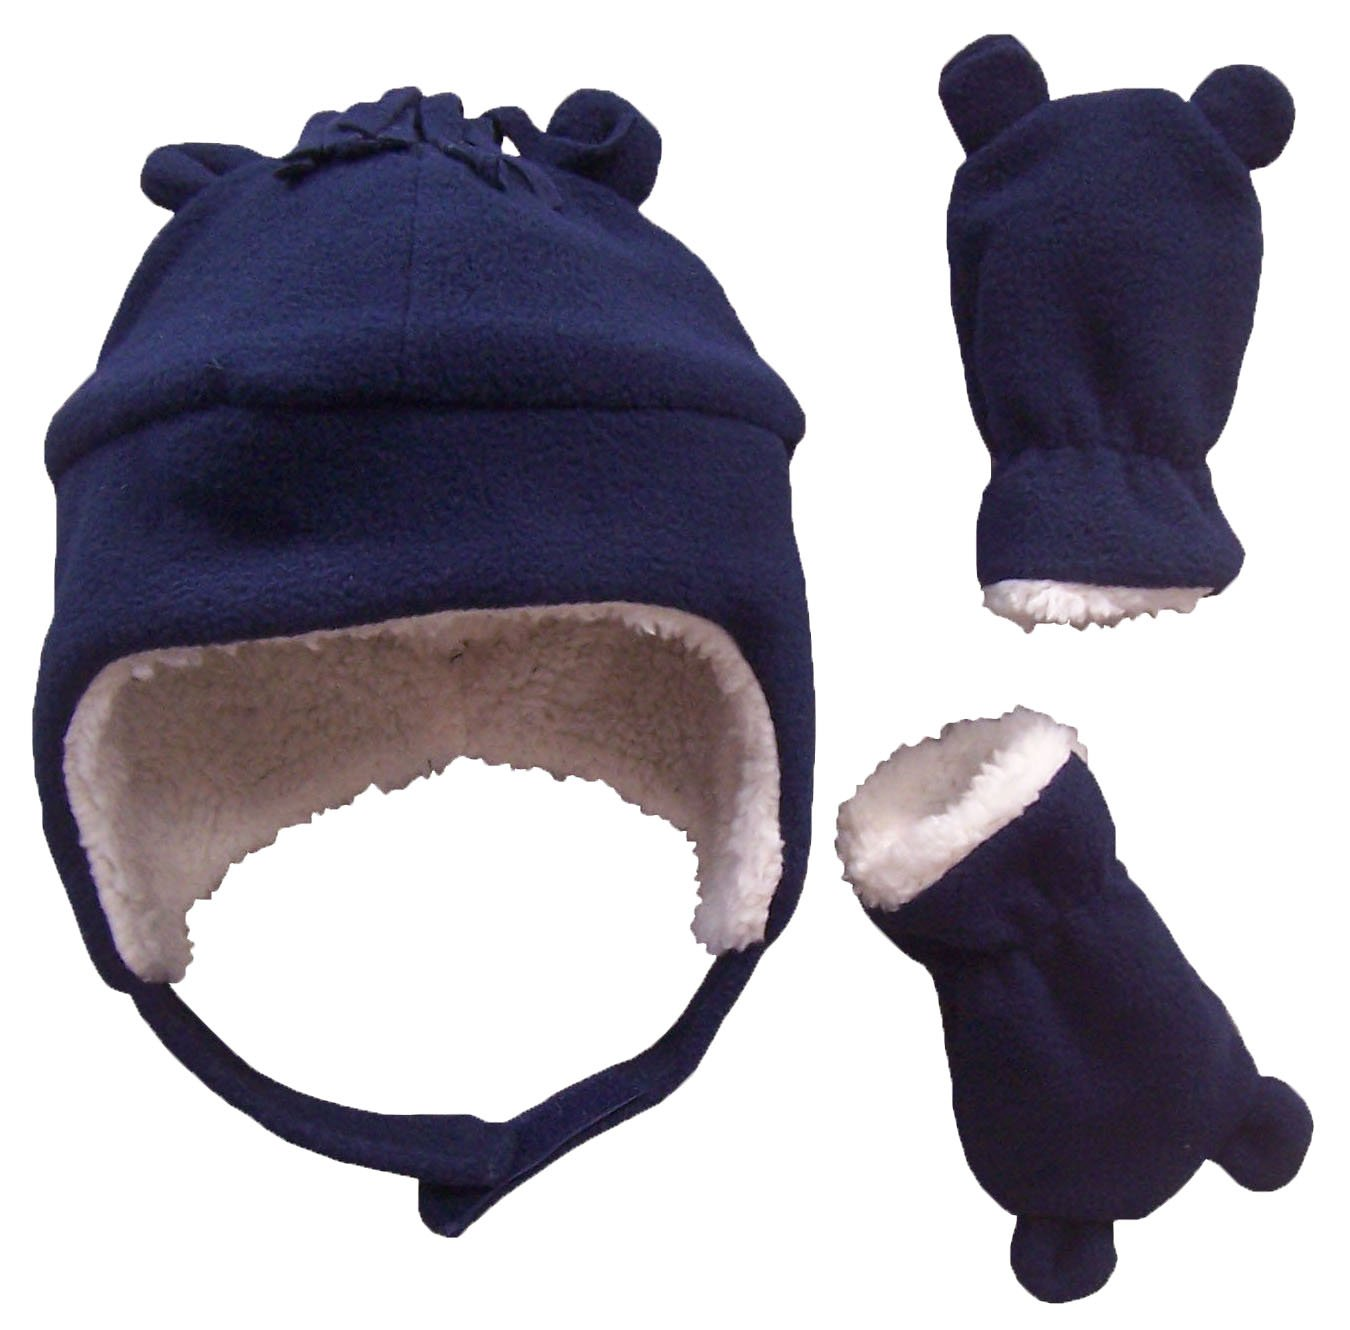 79c408a21b6 N Ice Caps - NICE CAPS Toddler Boys and Baby Warm Sherpa Lined Micro Fleece  Hat and Mitten Cold Weather Winter Snow Headwear Accessory Set with Ears -  Fits ...